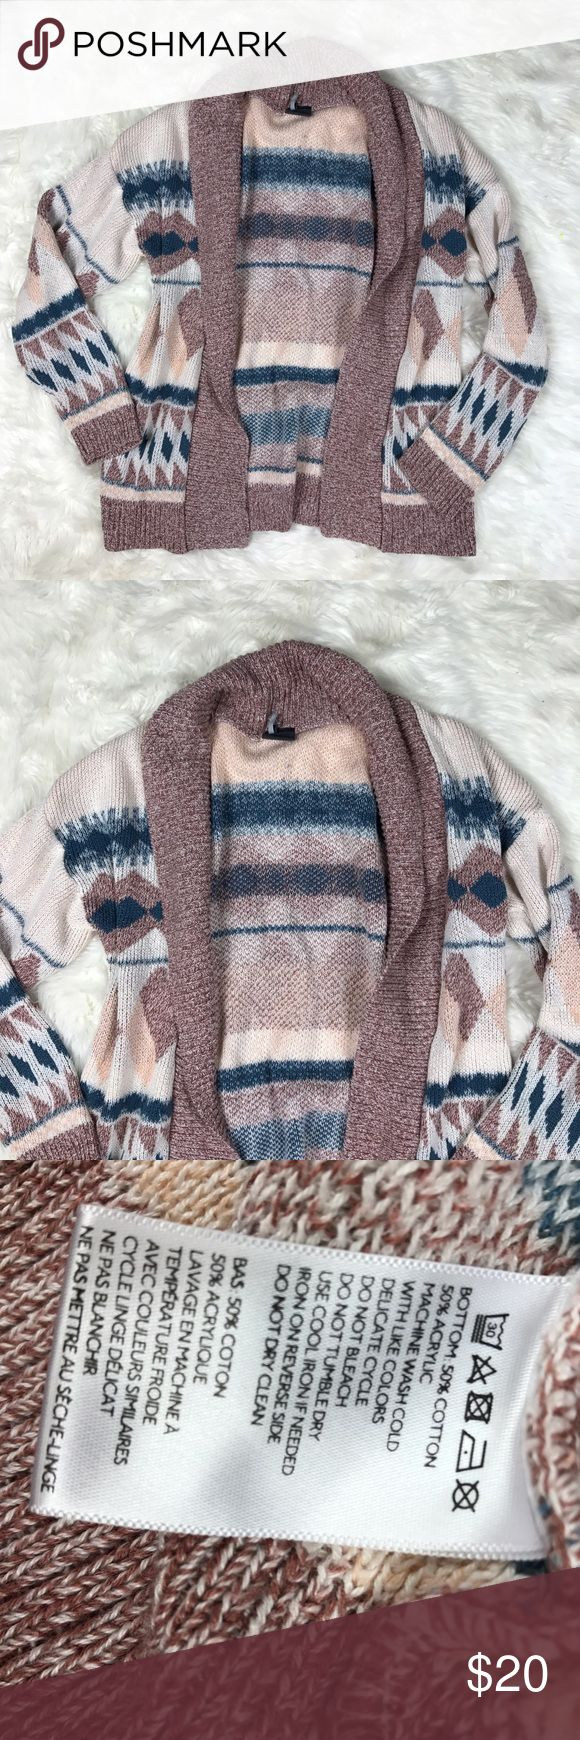 Sparkle & fade Aztec open front cardigan medium Sparkle & fade open front Aztec boho cardigan size medium Urban Outfitters Sweaters Cardigans